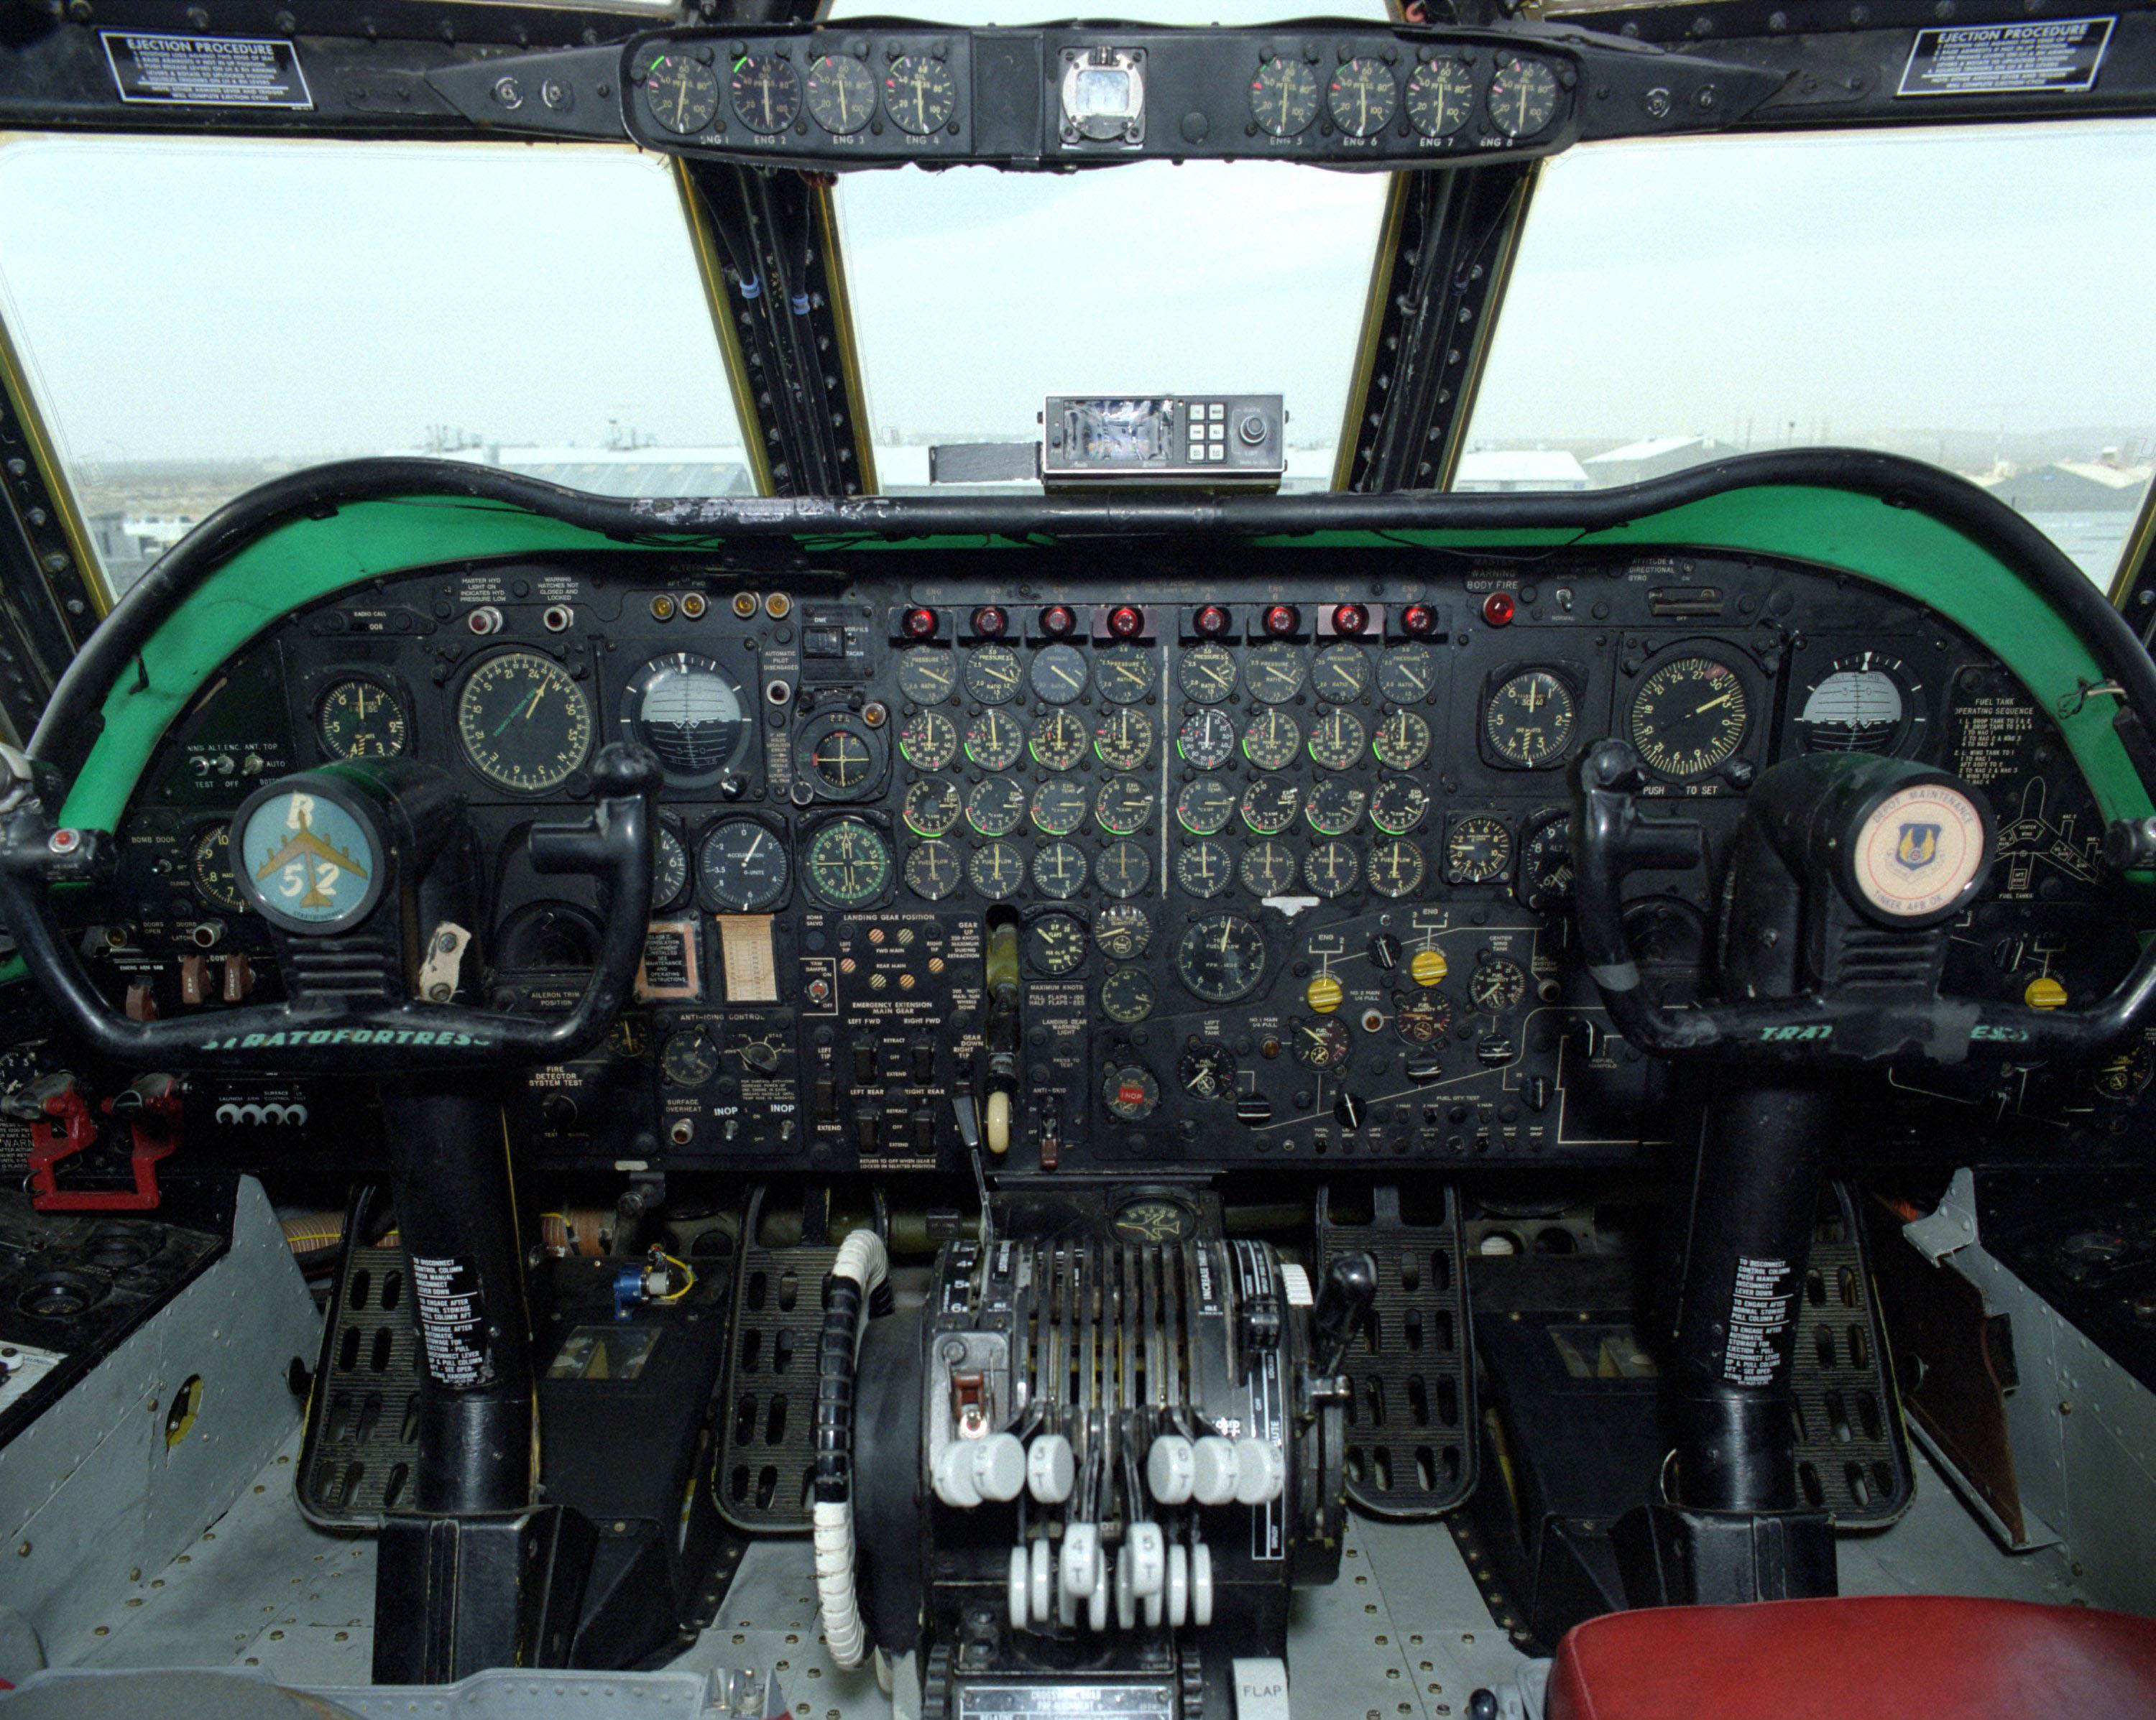 Accident Investigators Learned That The Enormous And Confusing Array Of  Dials And Gauges In Older Aircraft